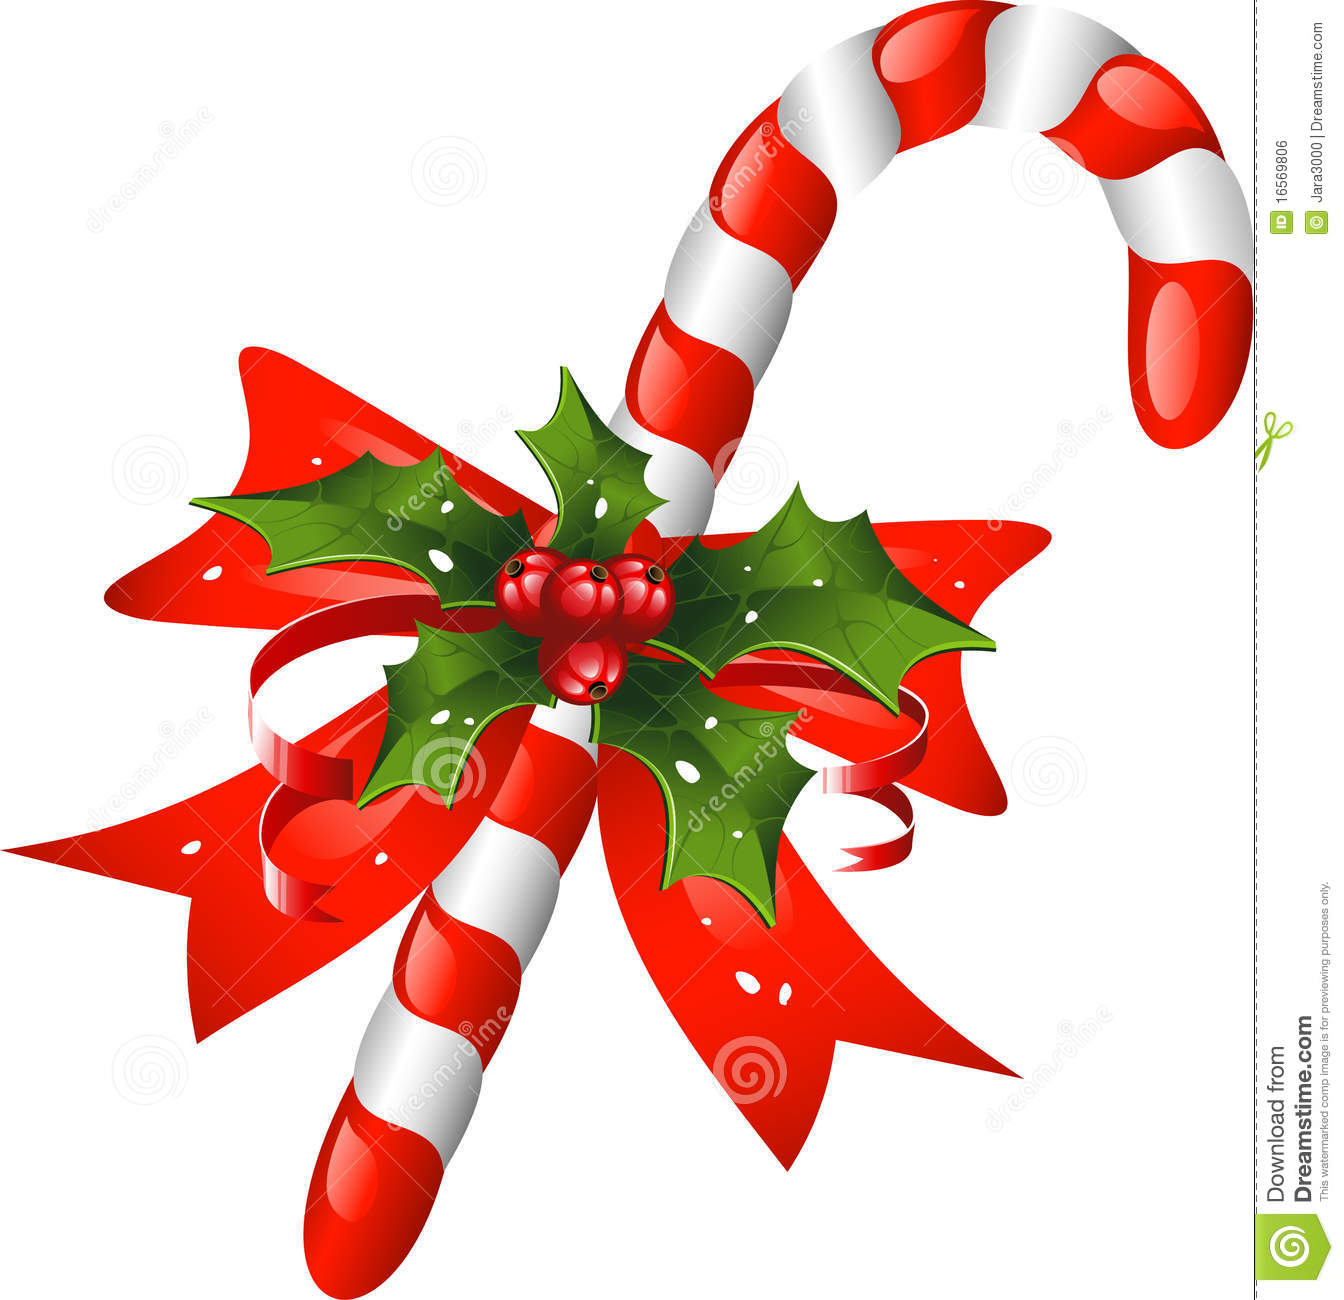 christmas candy cane decorated with a bow and holl - Christmas Candy Canes